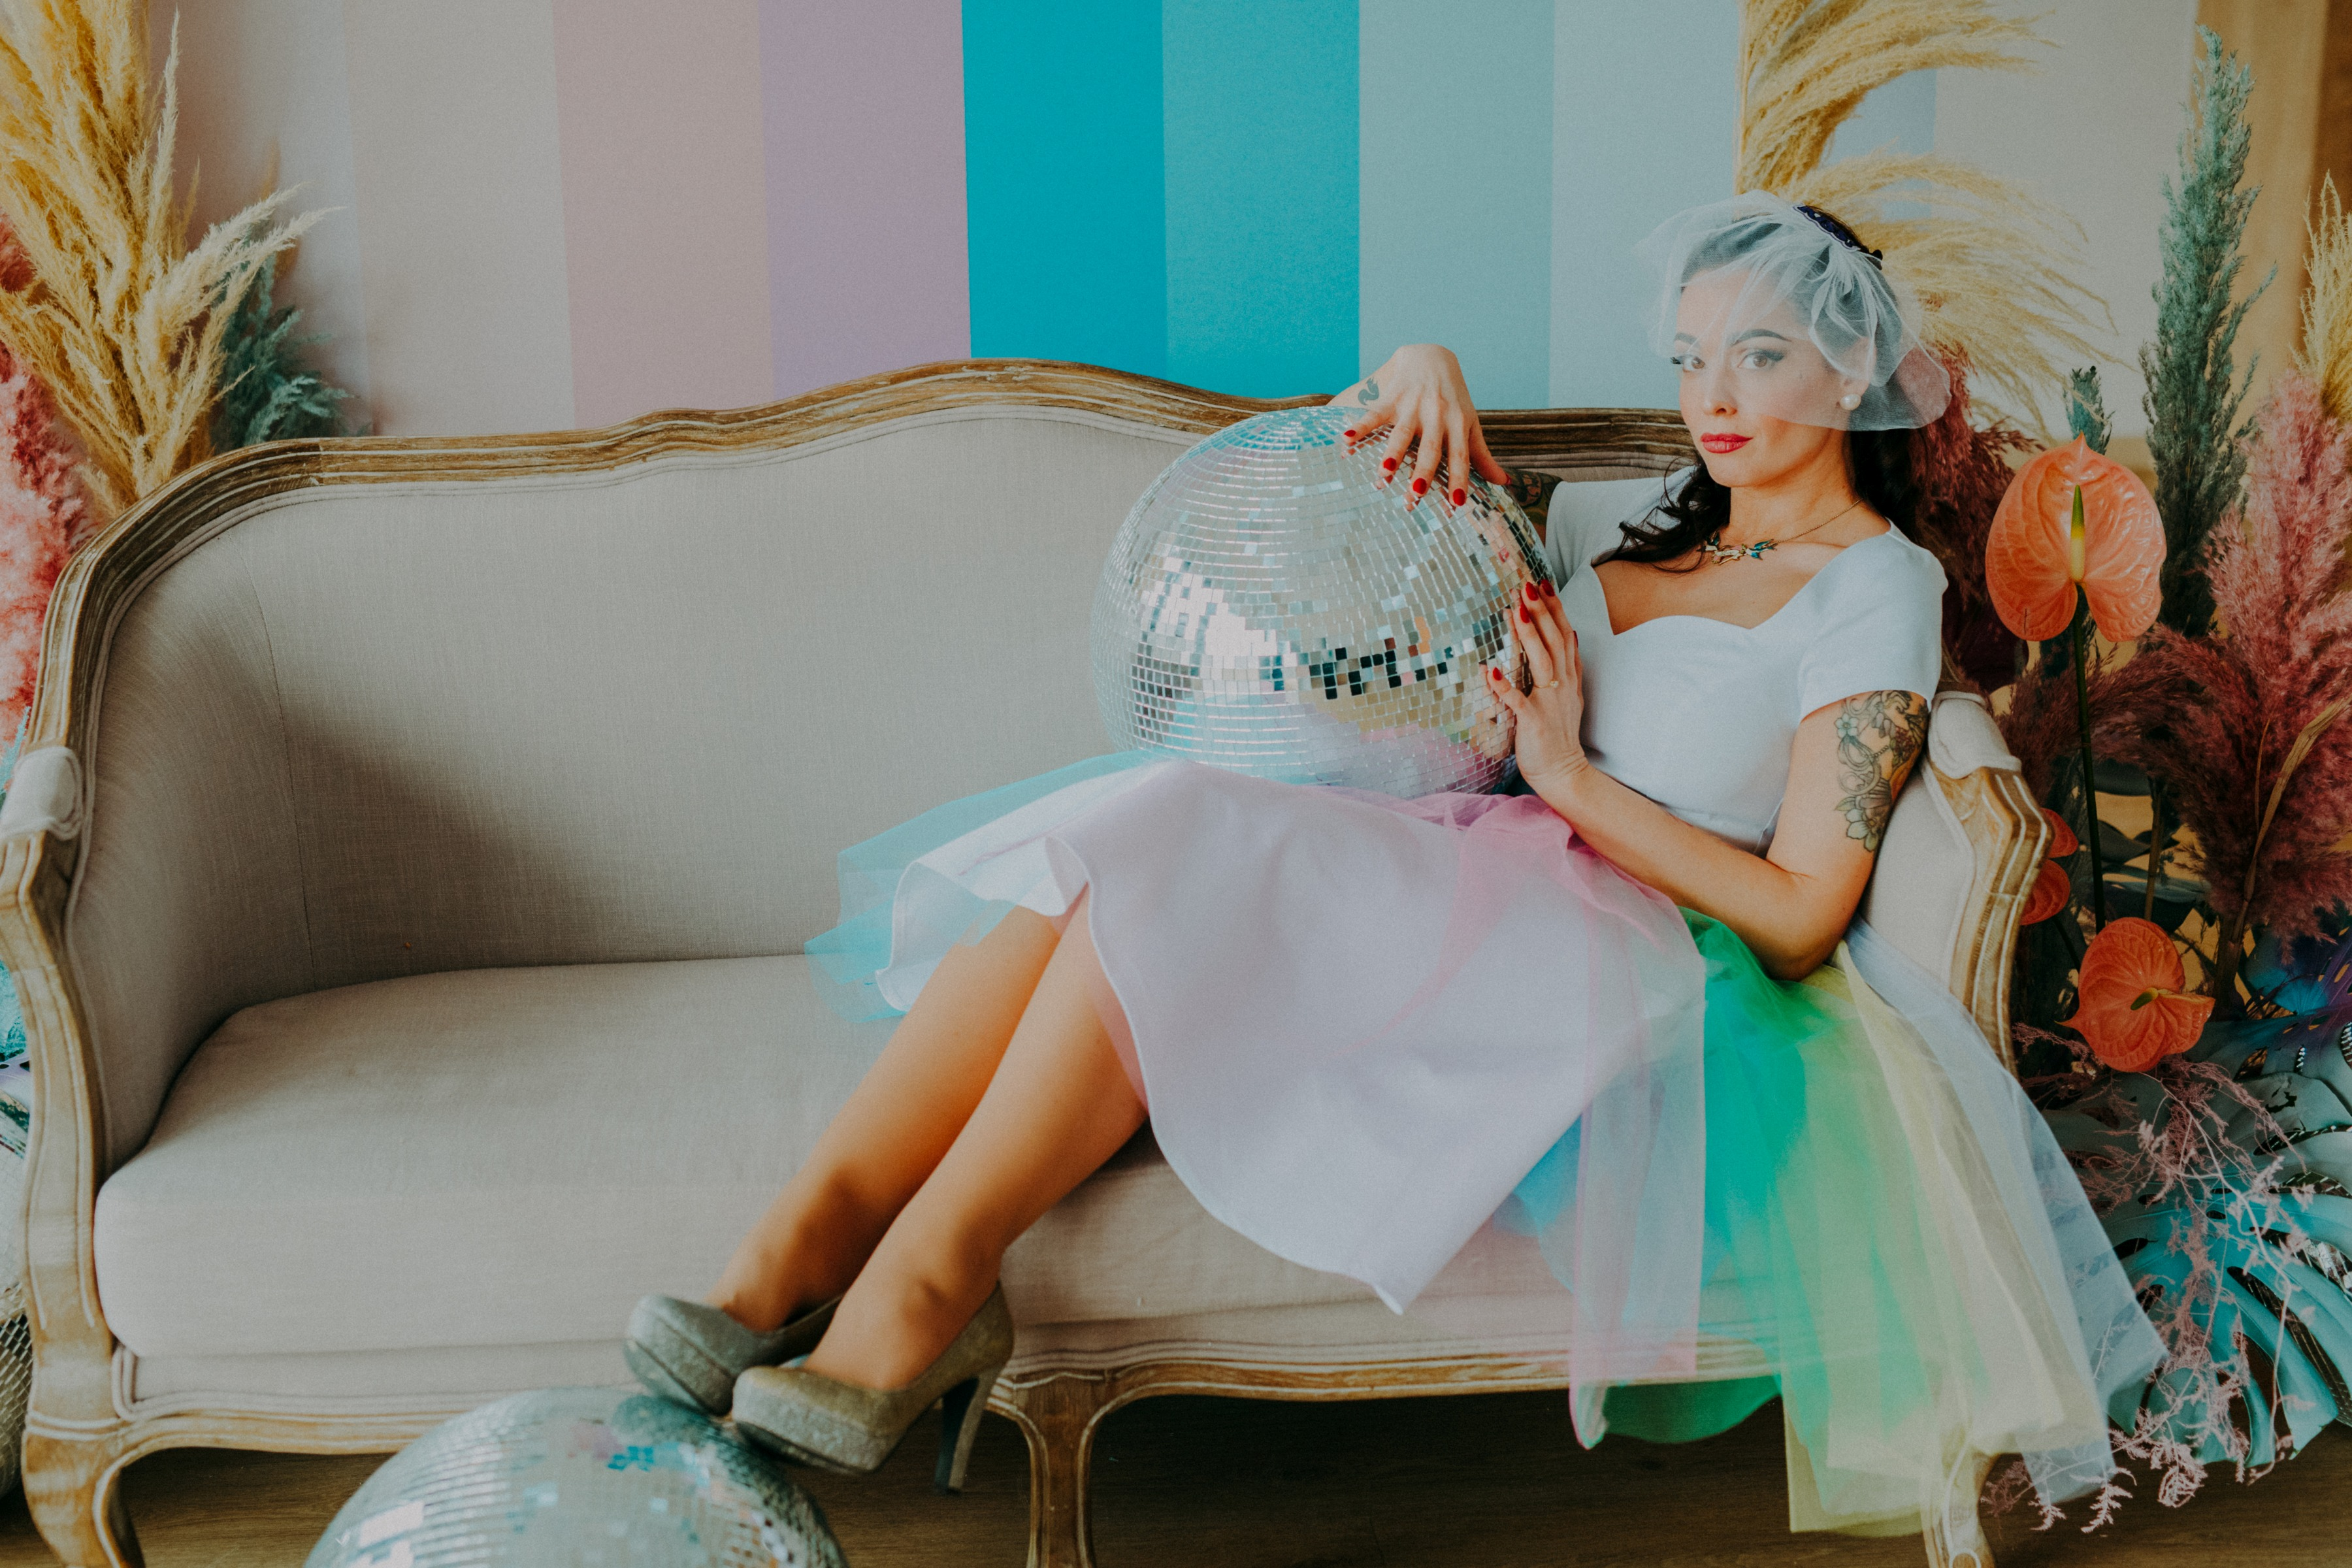 colourful pastel wedding - unconventional wedding - alternative wedding - colourful wedding dress - unique wedding dress - alternative wedding dress - unique retro wedding dress - alternative bridal wear